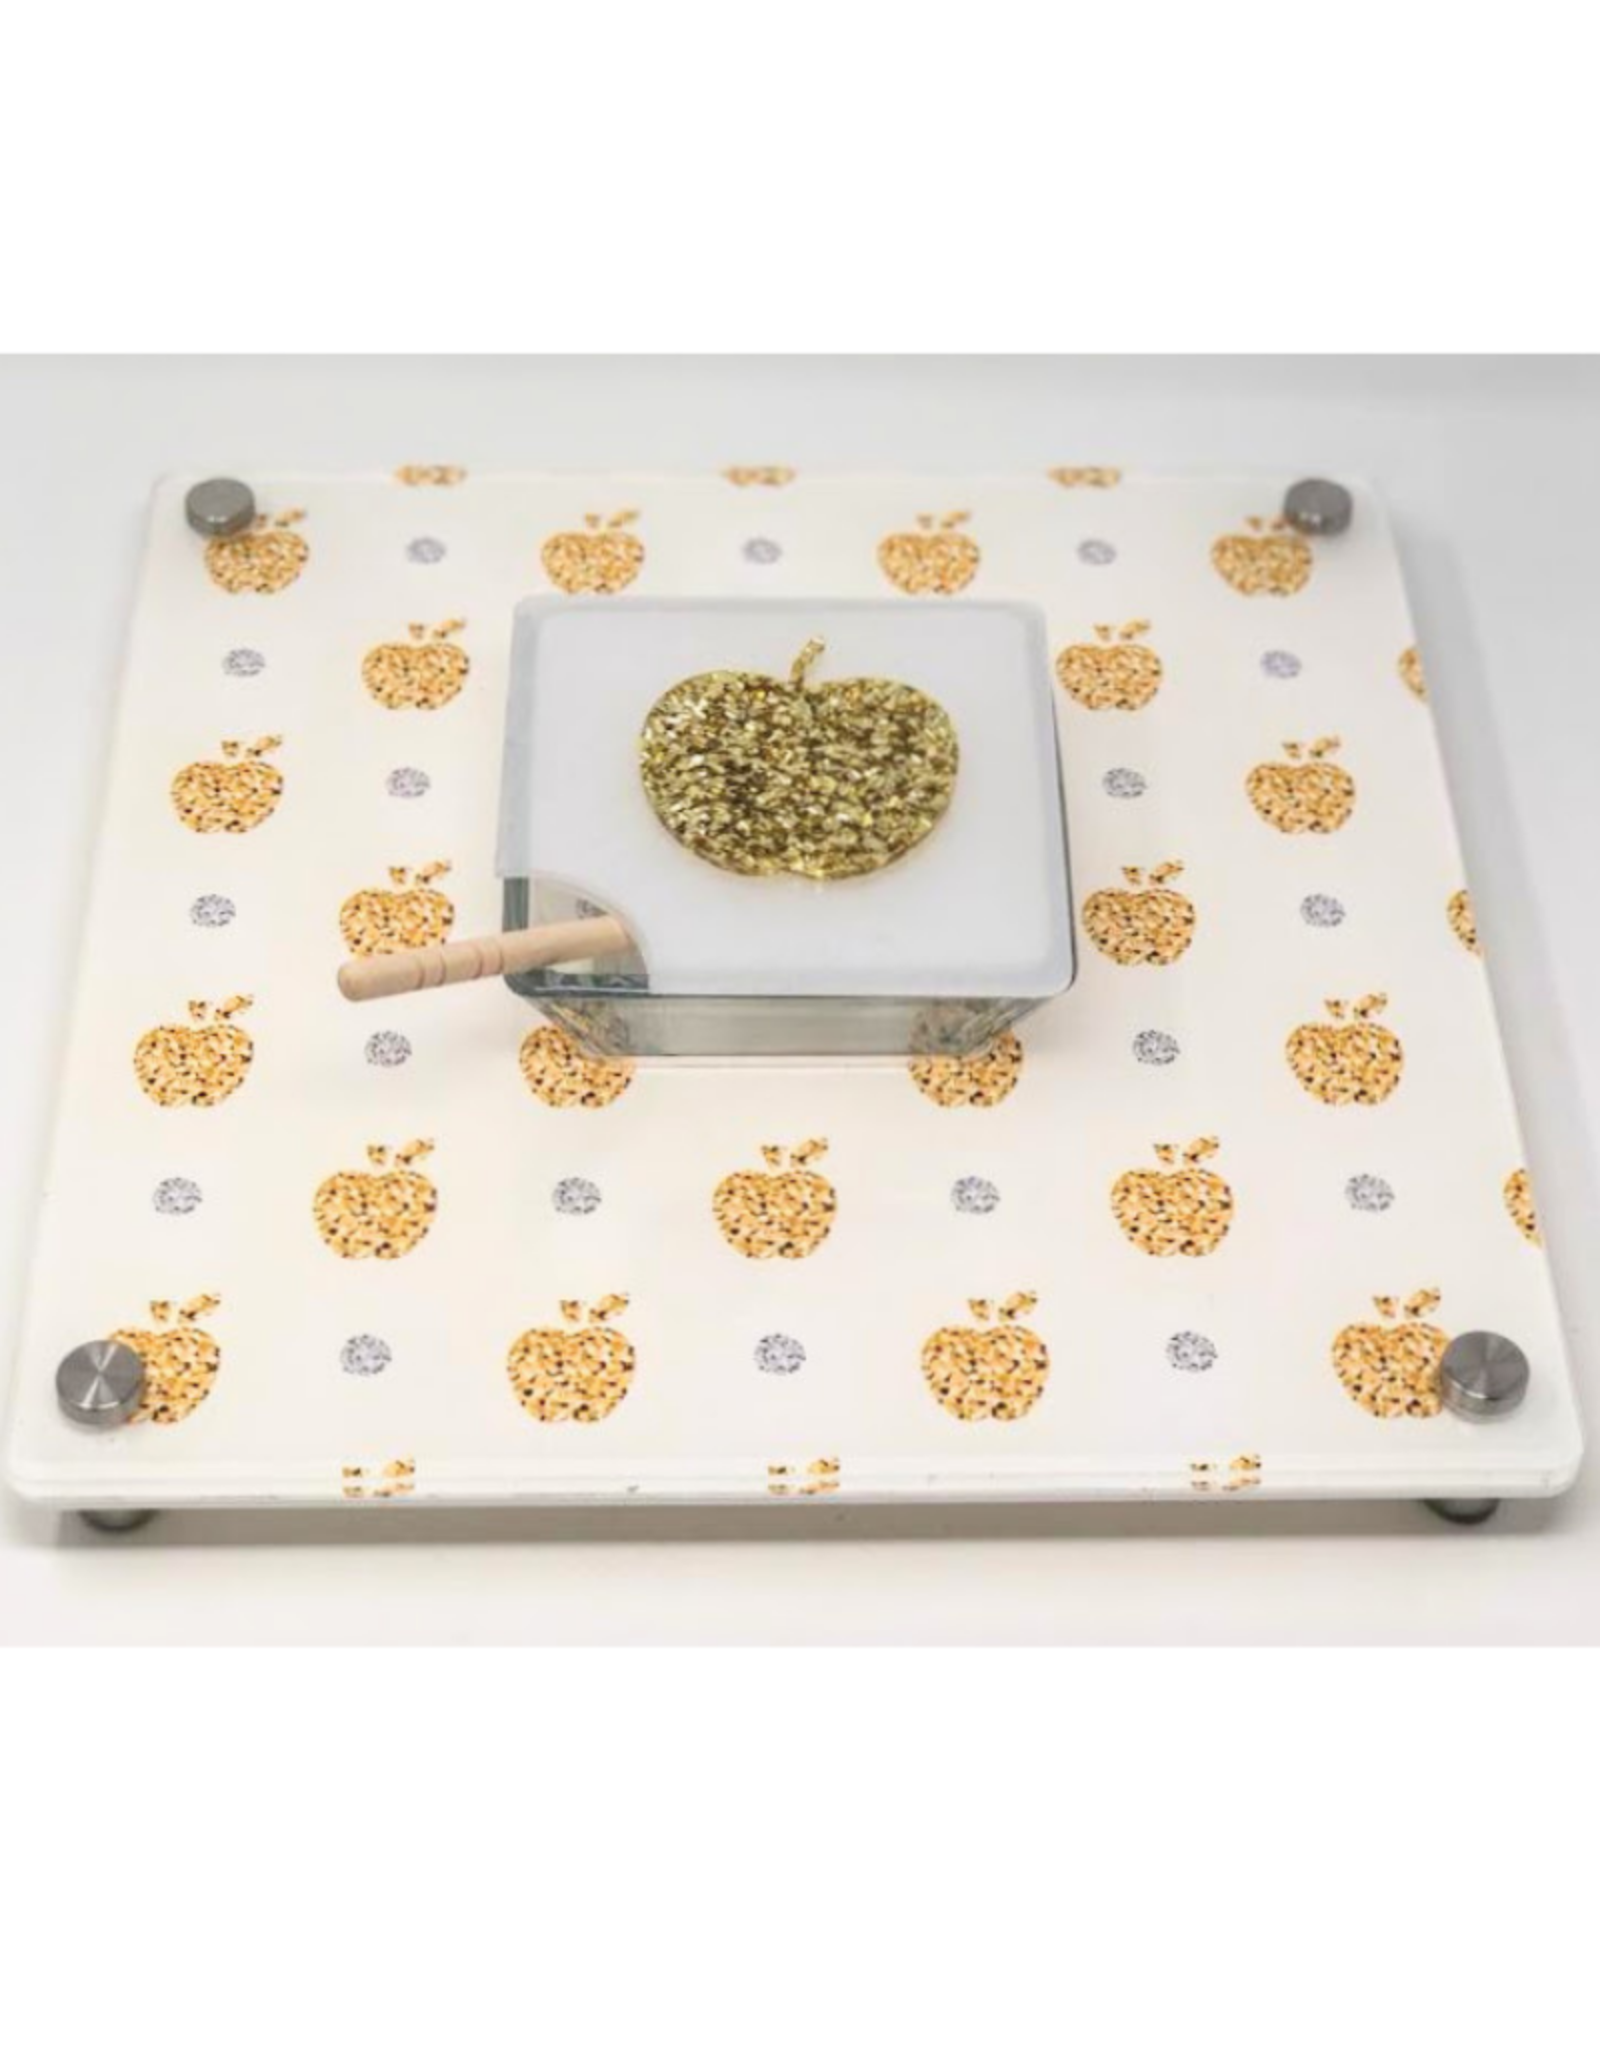 Apple Bling Honey Cup Tray Silver & Gold